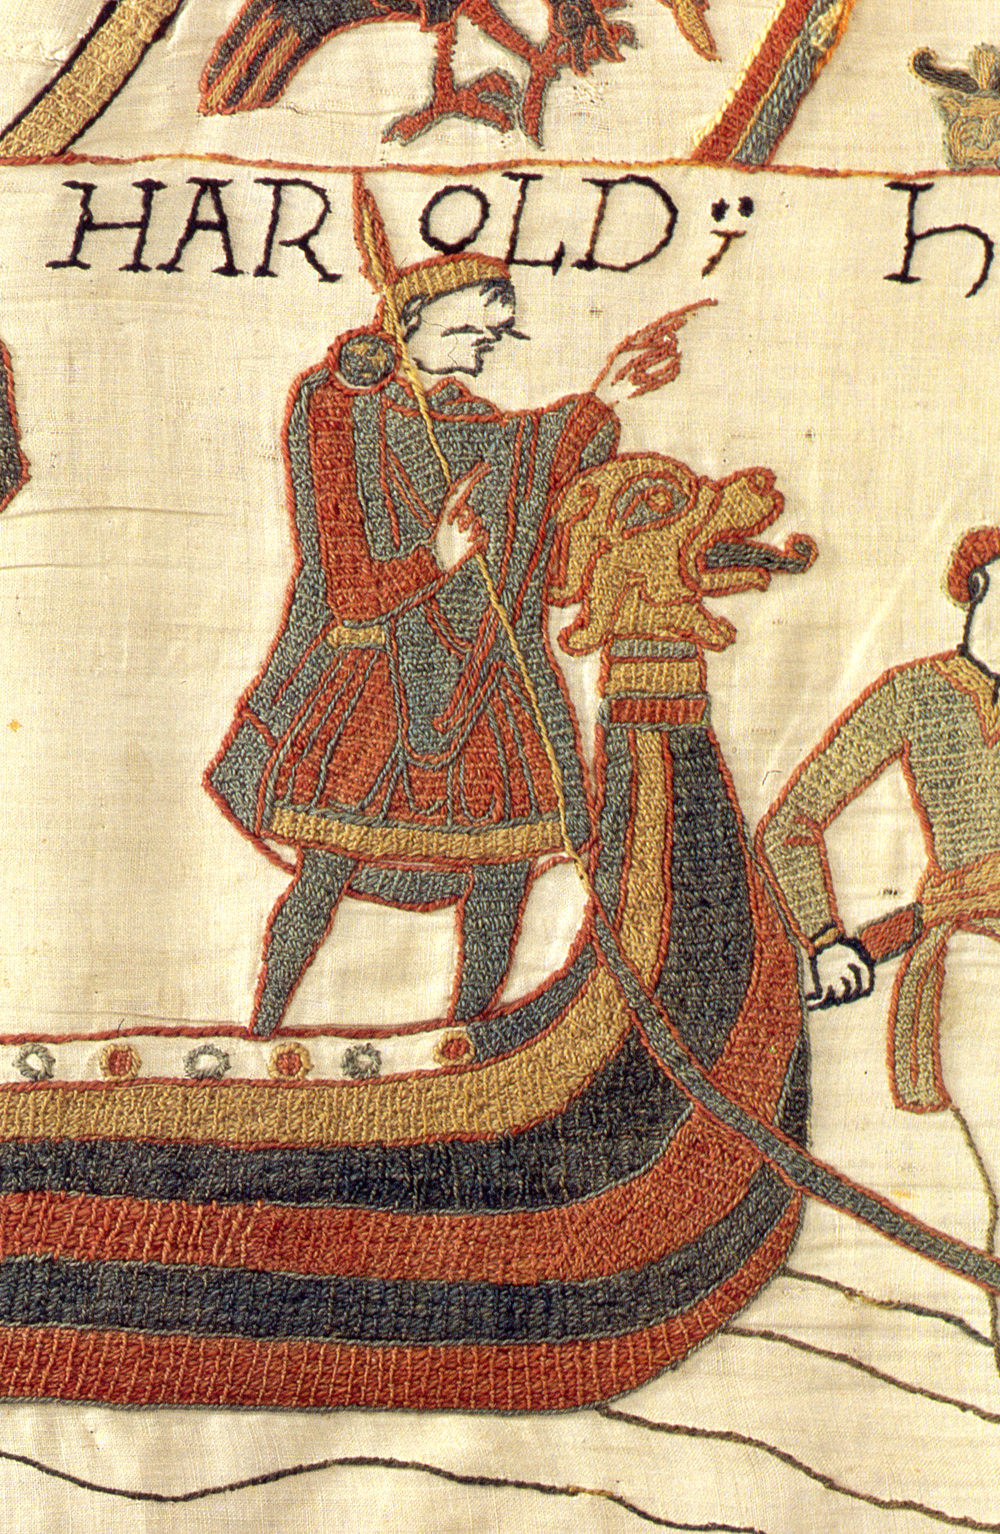 King Arold in the Bayeux Tapestry